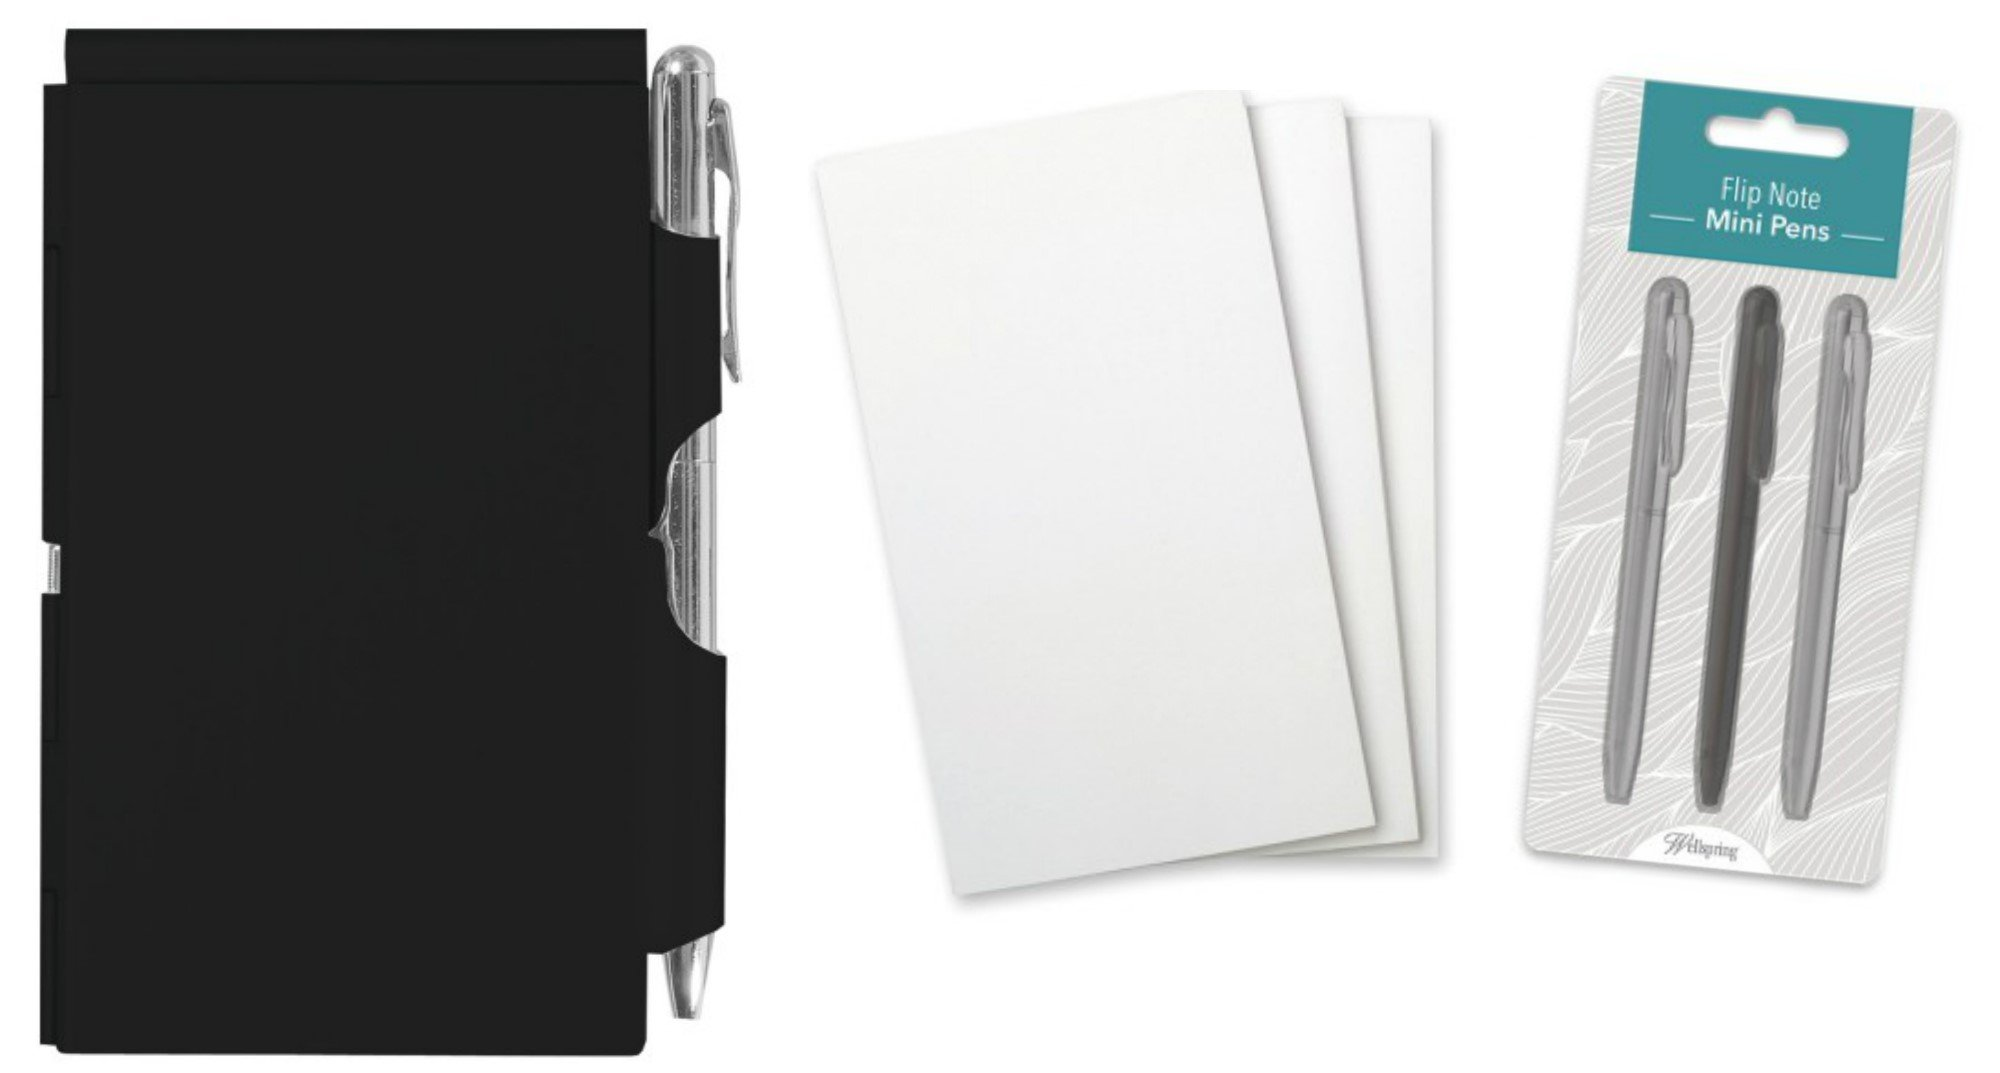 Wellspring Flip Note Notepad Set: Black Flip Note, 3 Flip Note Refill Pads and a 3 Mini Pen Refill by Wellspring (Image #1)